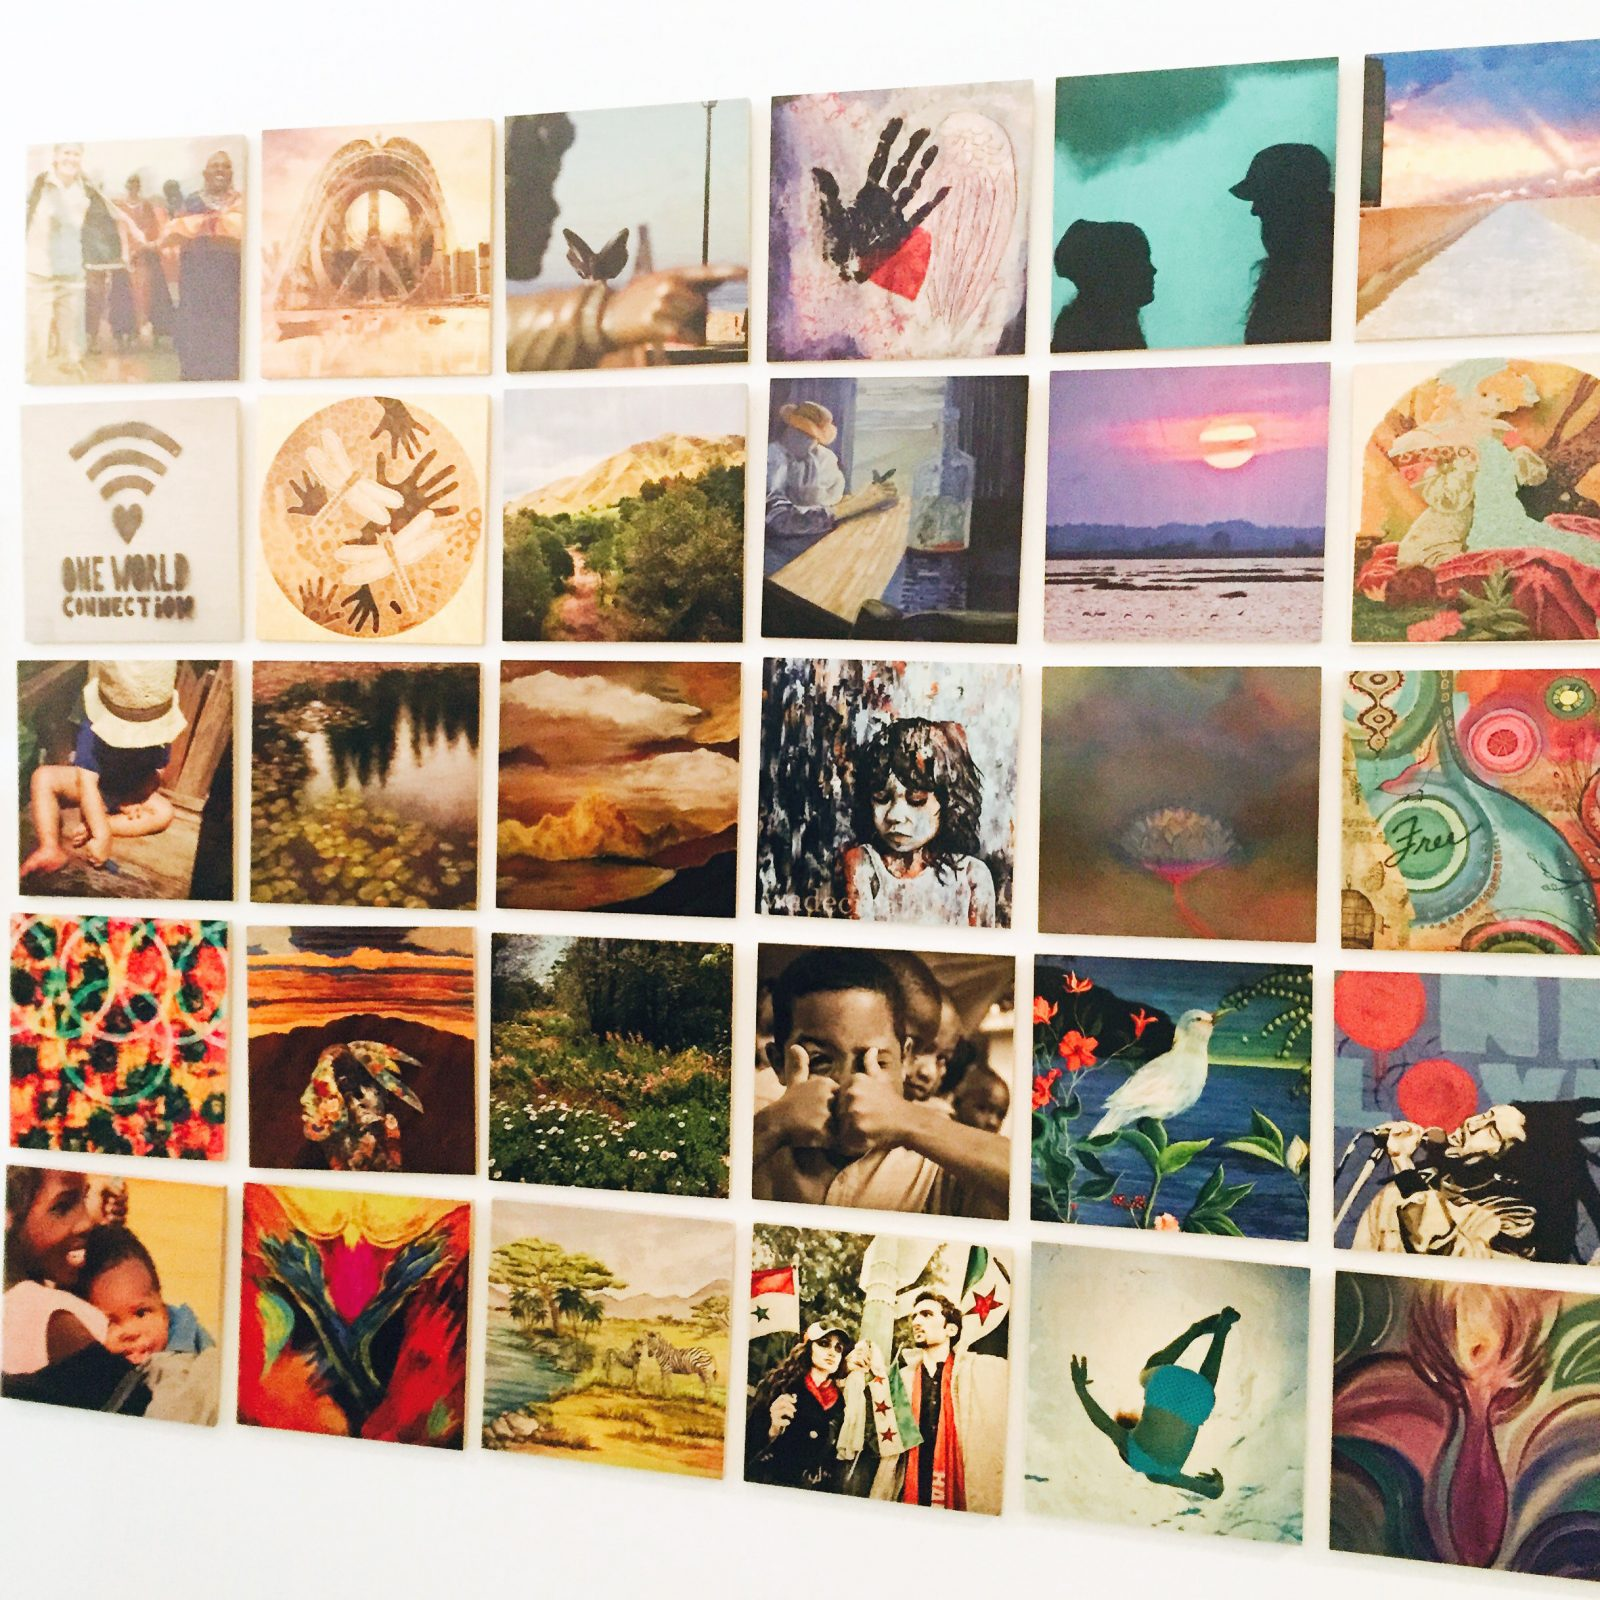 The Whole 9 Gallery